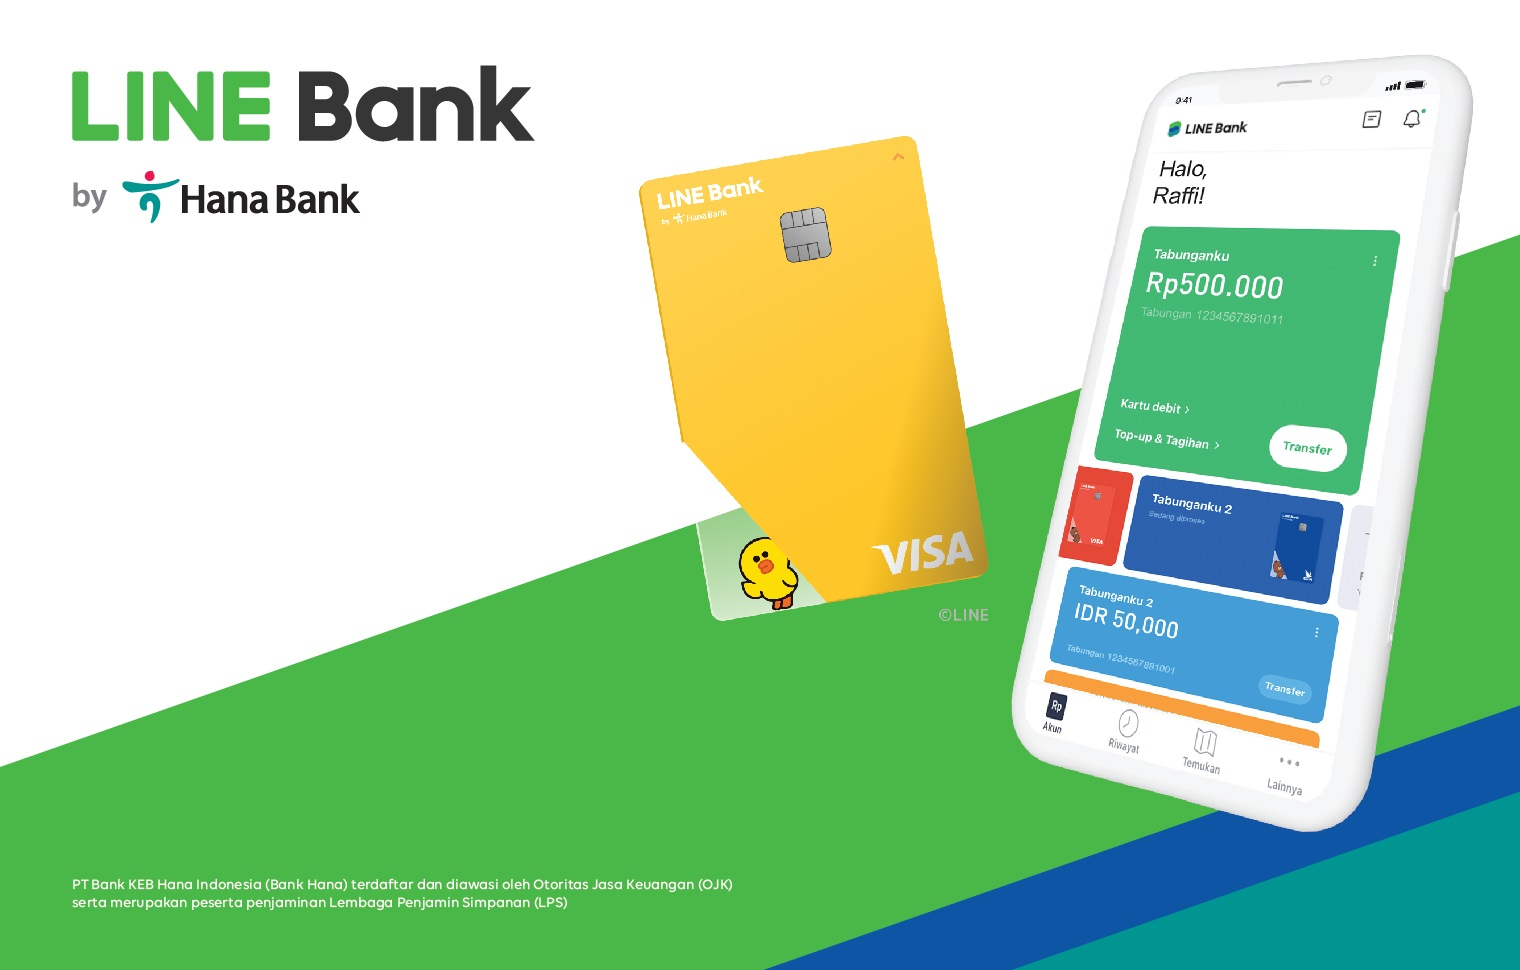 Naver's Line Bank expands in Asia with Indonesian venture